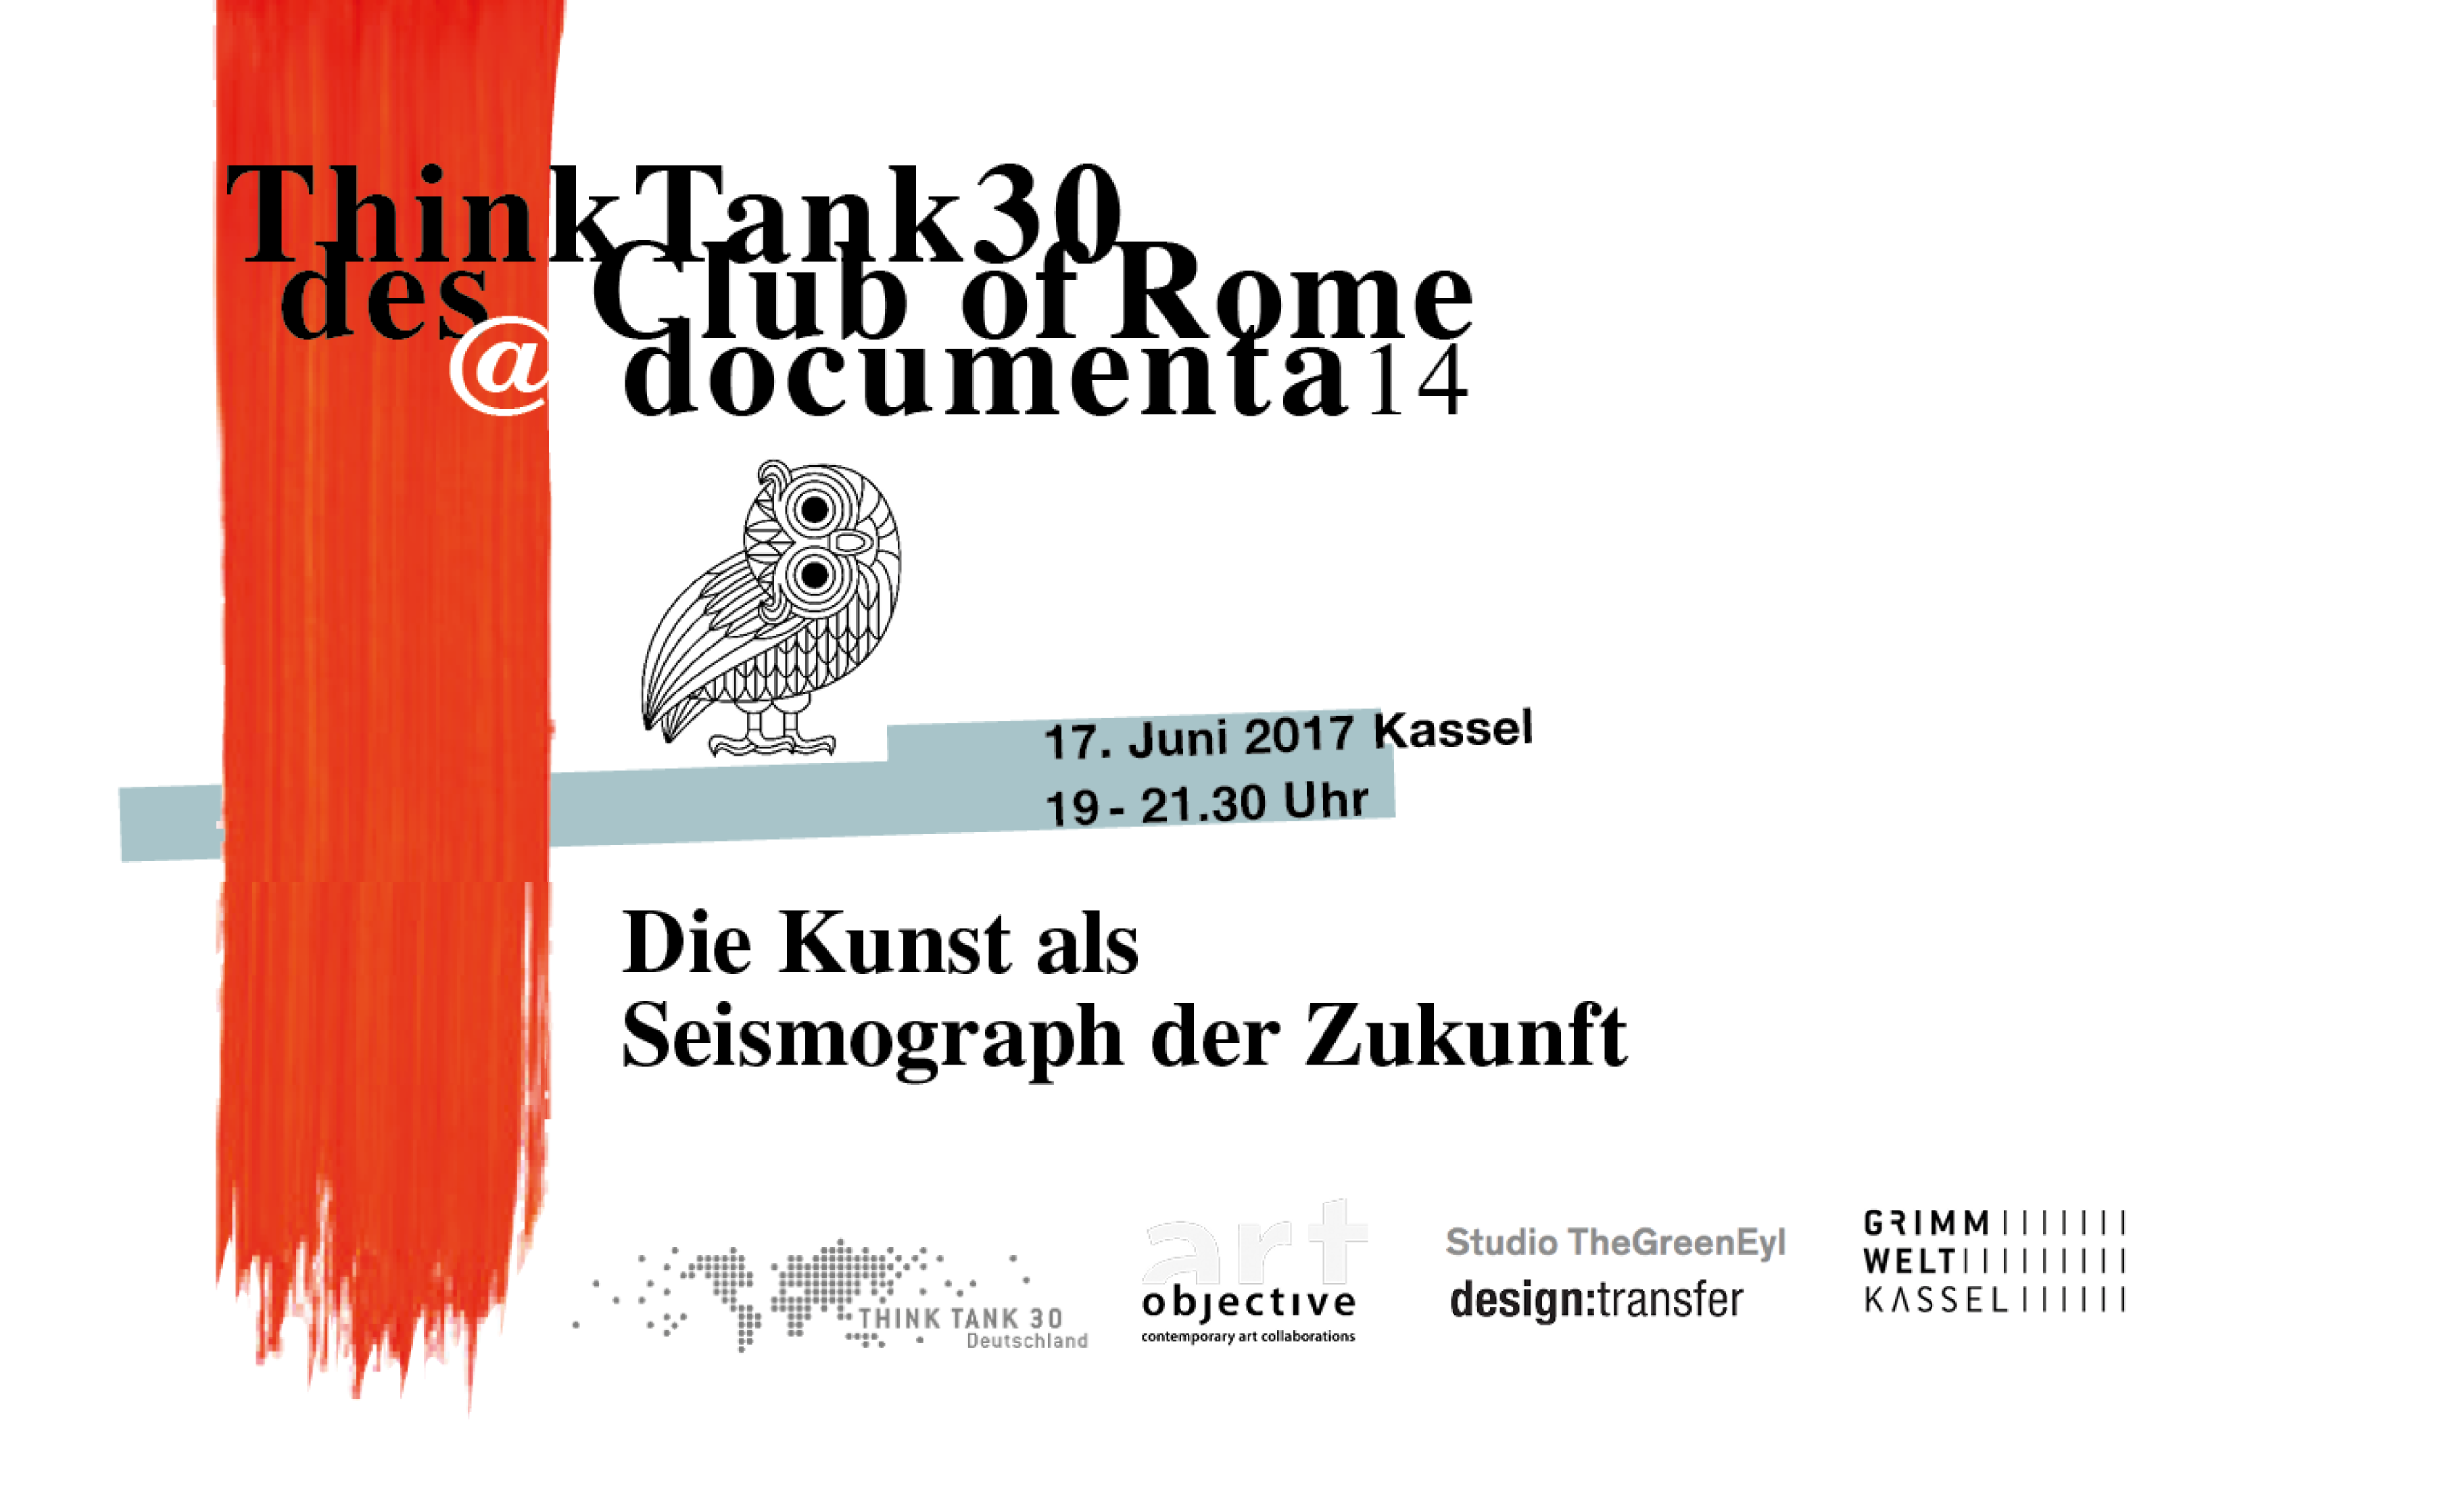 Think Tank 30 documenta 14